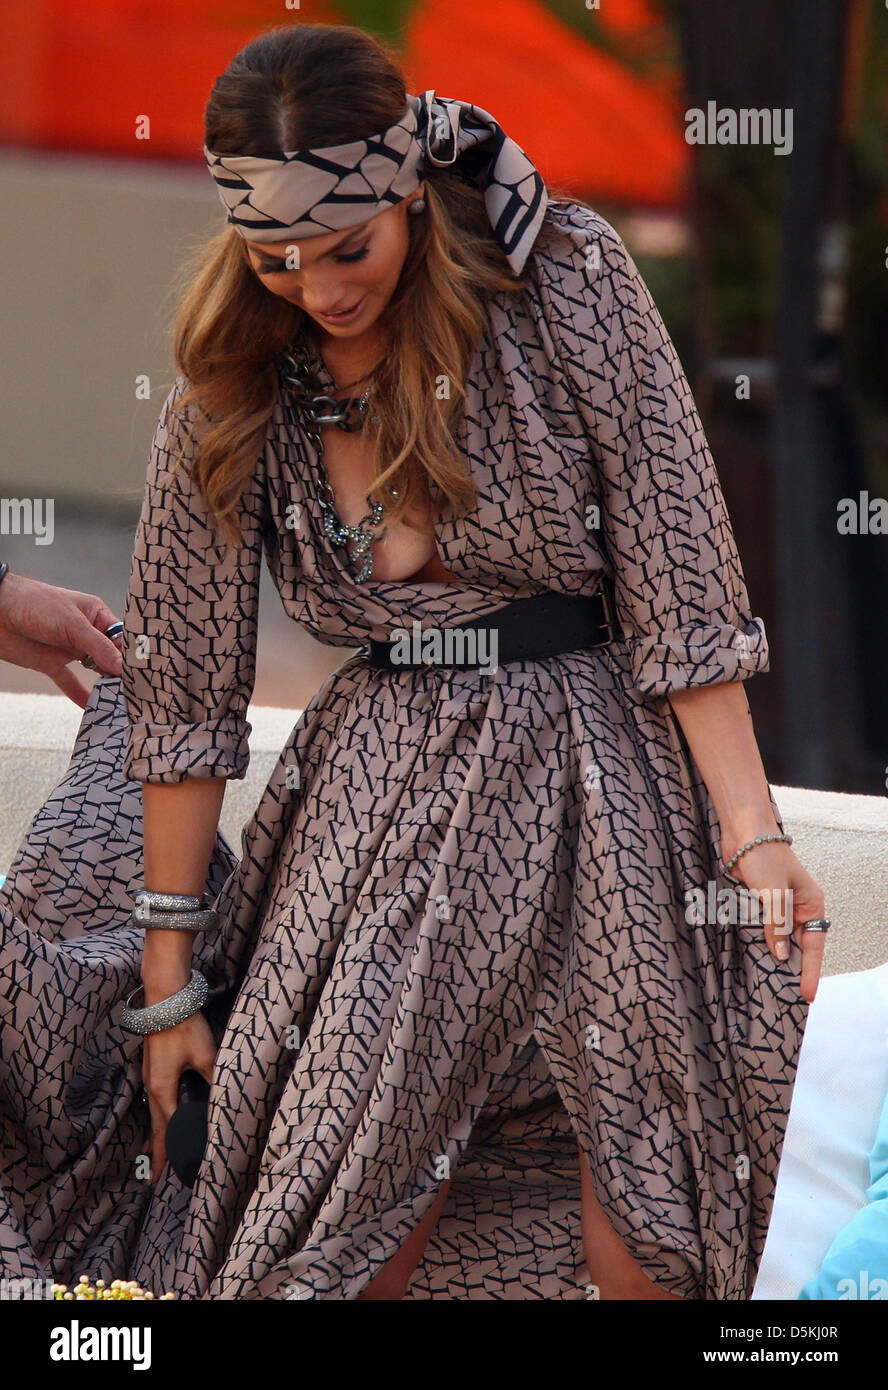 Jennifer Lopez suffers wardrobe malfunction on German ZDF TV show